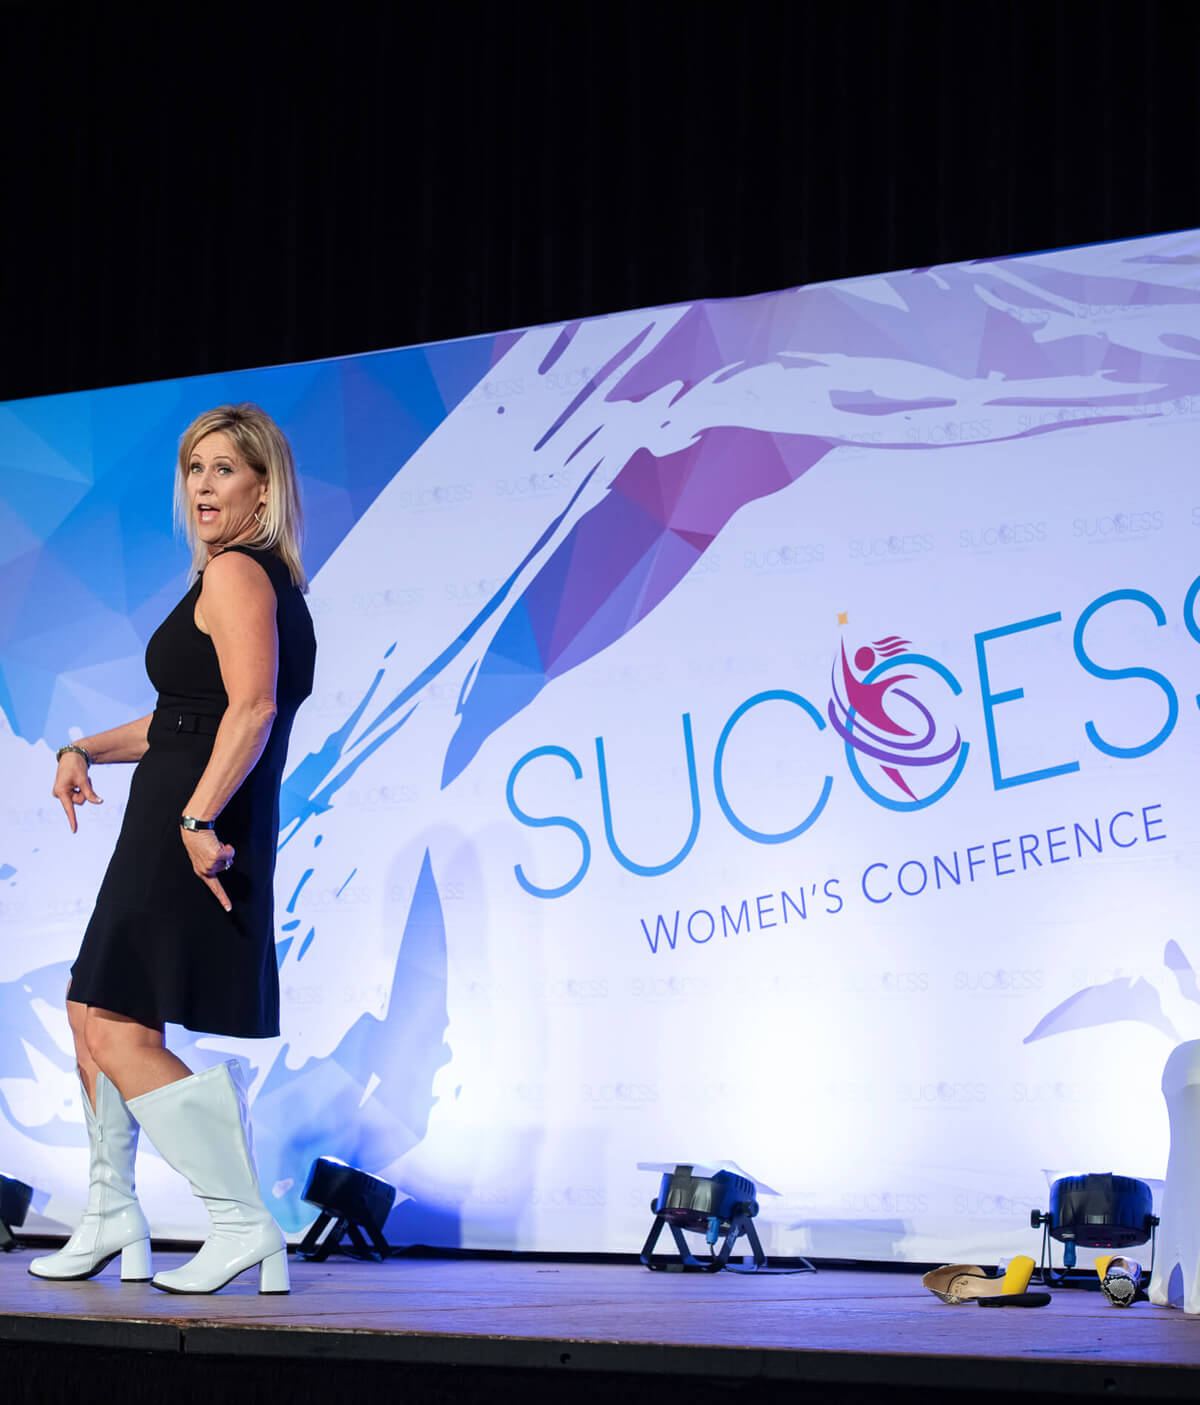 Deborah Gardner at Success for Women's Conference